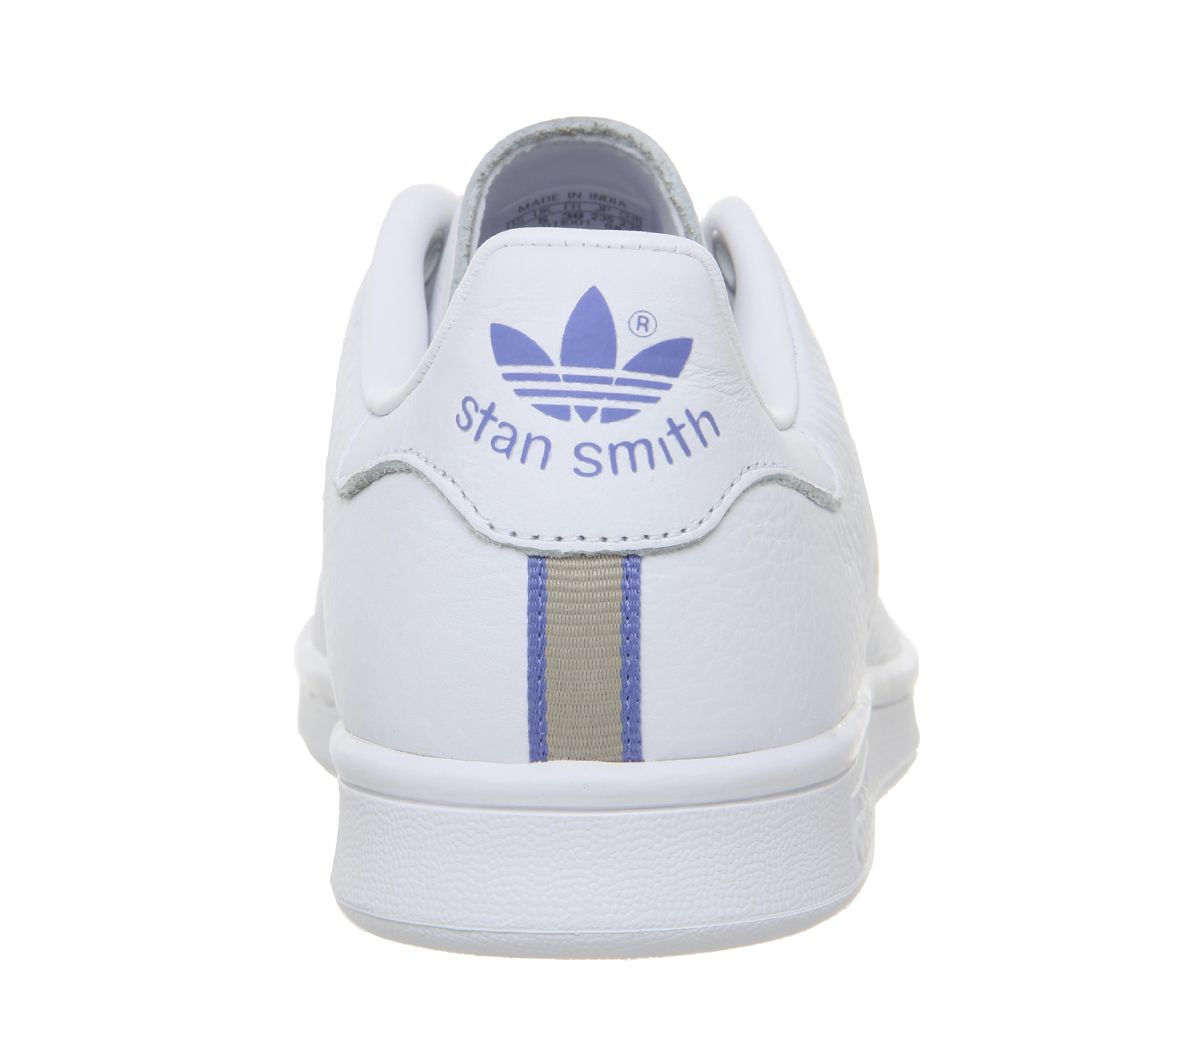 the best attitude 264e8 4b7f4 Short-Femme-Adidas-Stan-Smith-Baskets-Blanc-Veritable-